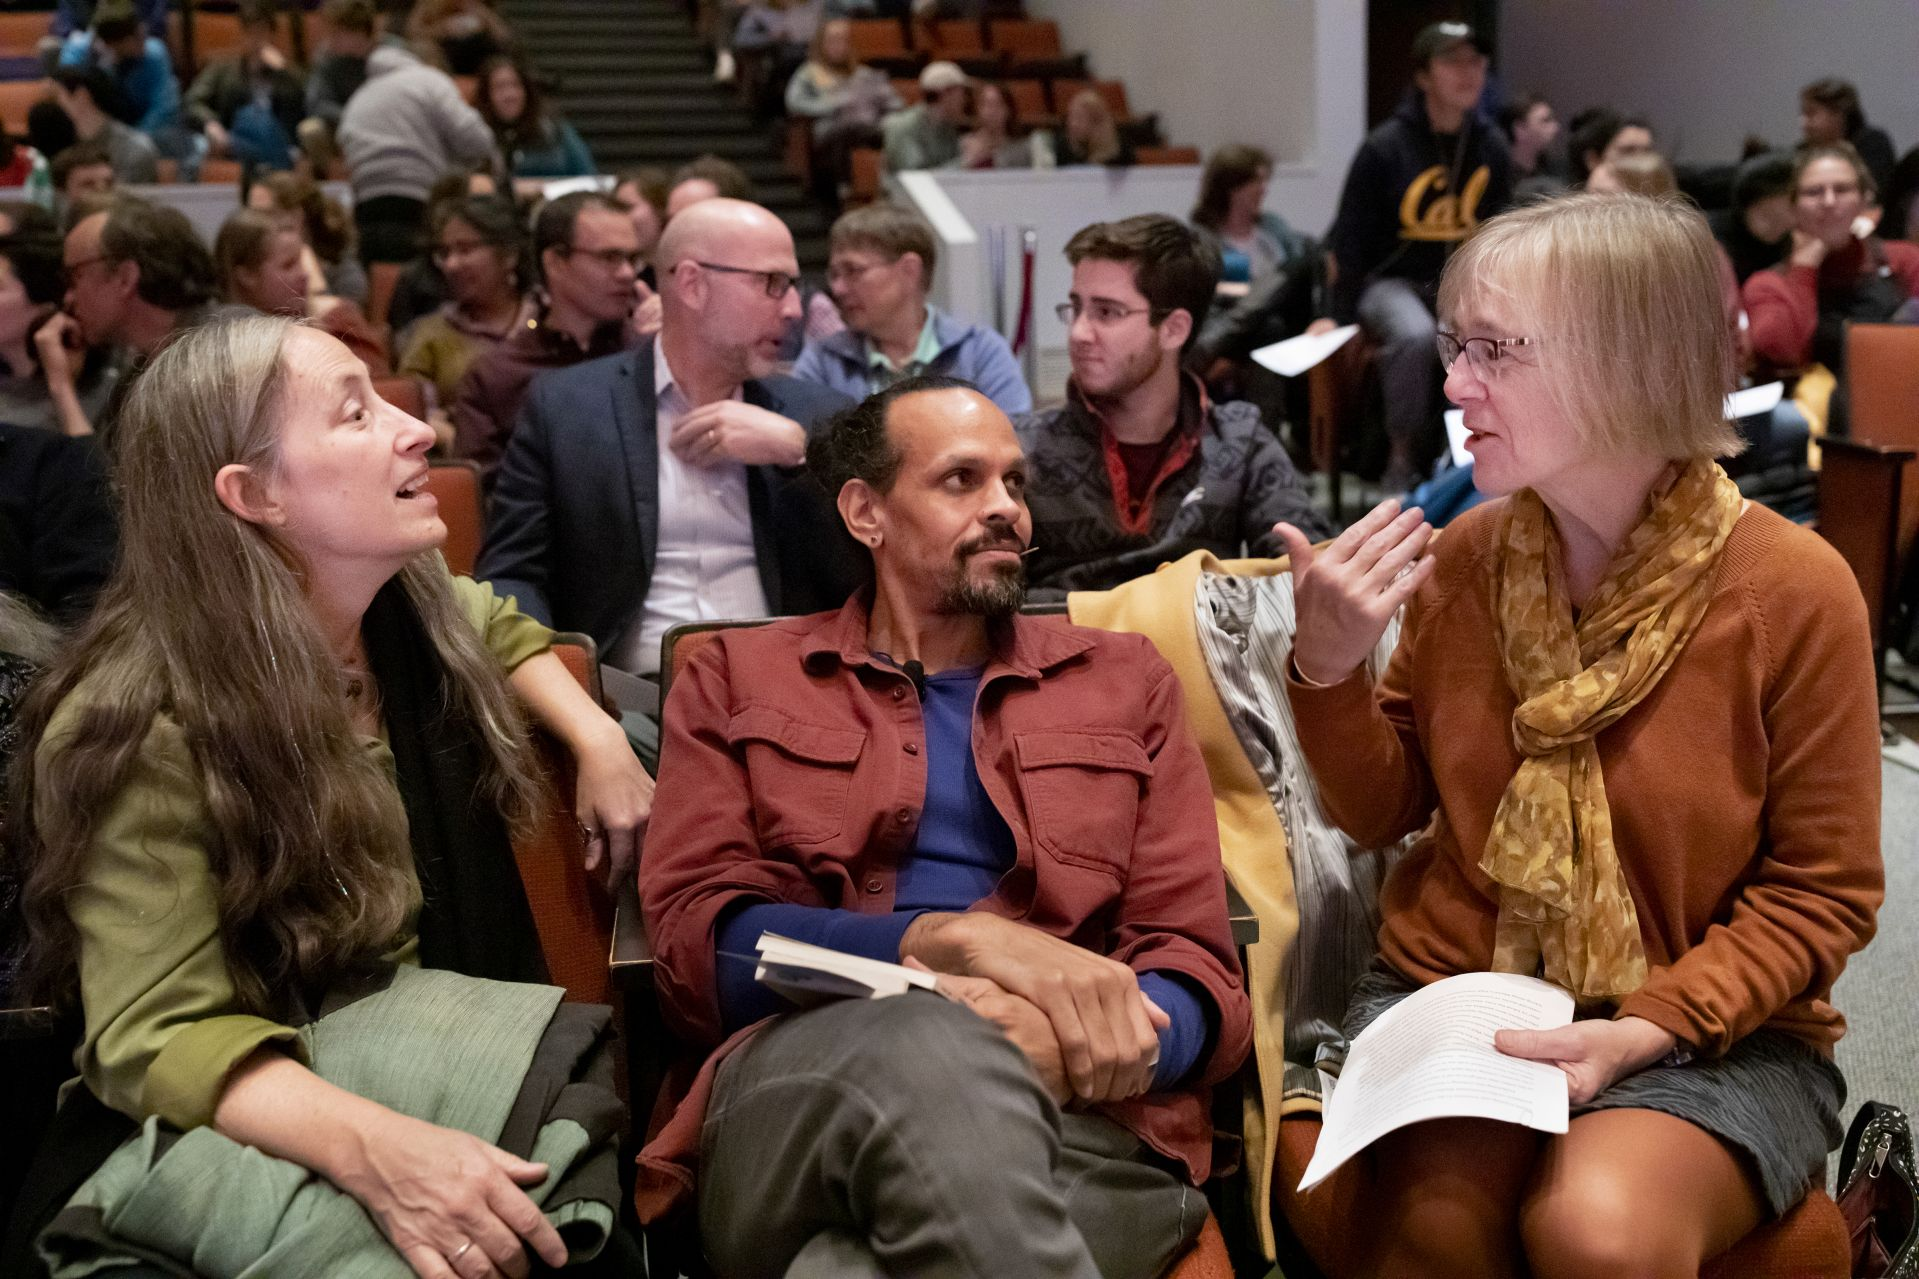 Professor of Religious Studies Cynthia Baker joins Ross Gay and Costlow before his Otis presentation in the Olin Arts Center Concert Hall. (Phyllis Graber Jensen/Bates College)